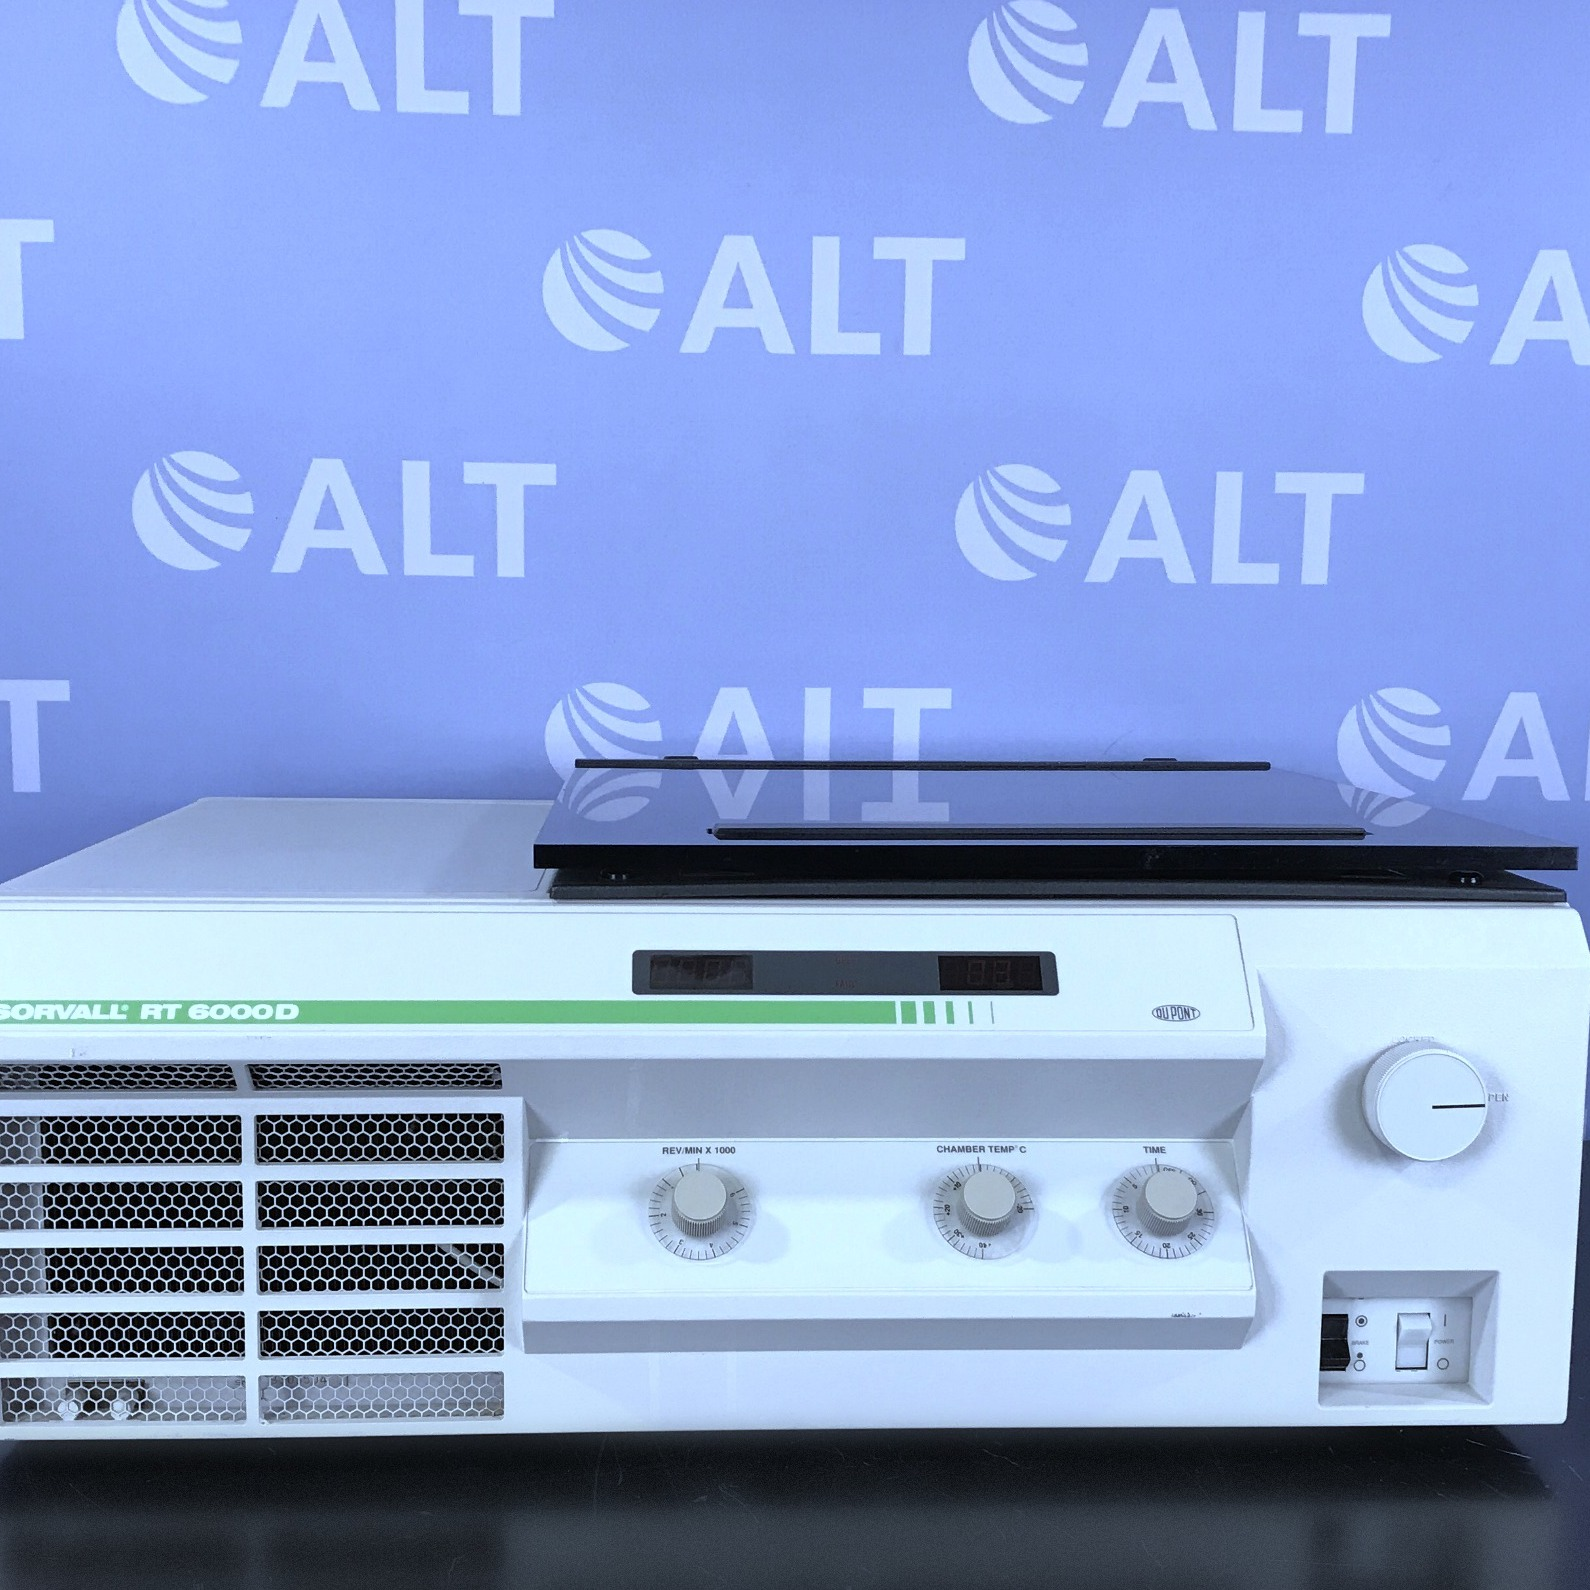 Sorvall RT6000D Benchtop Refrigerated Centrifuge Image